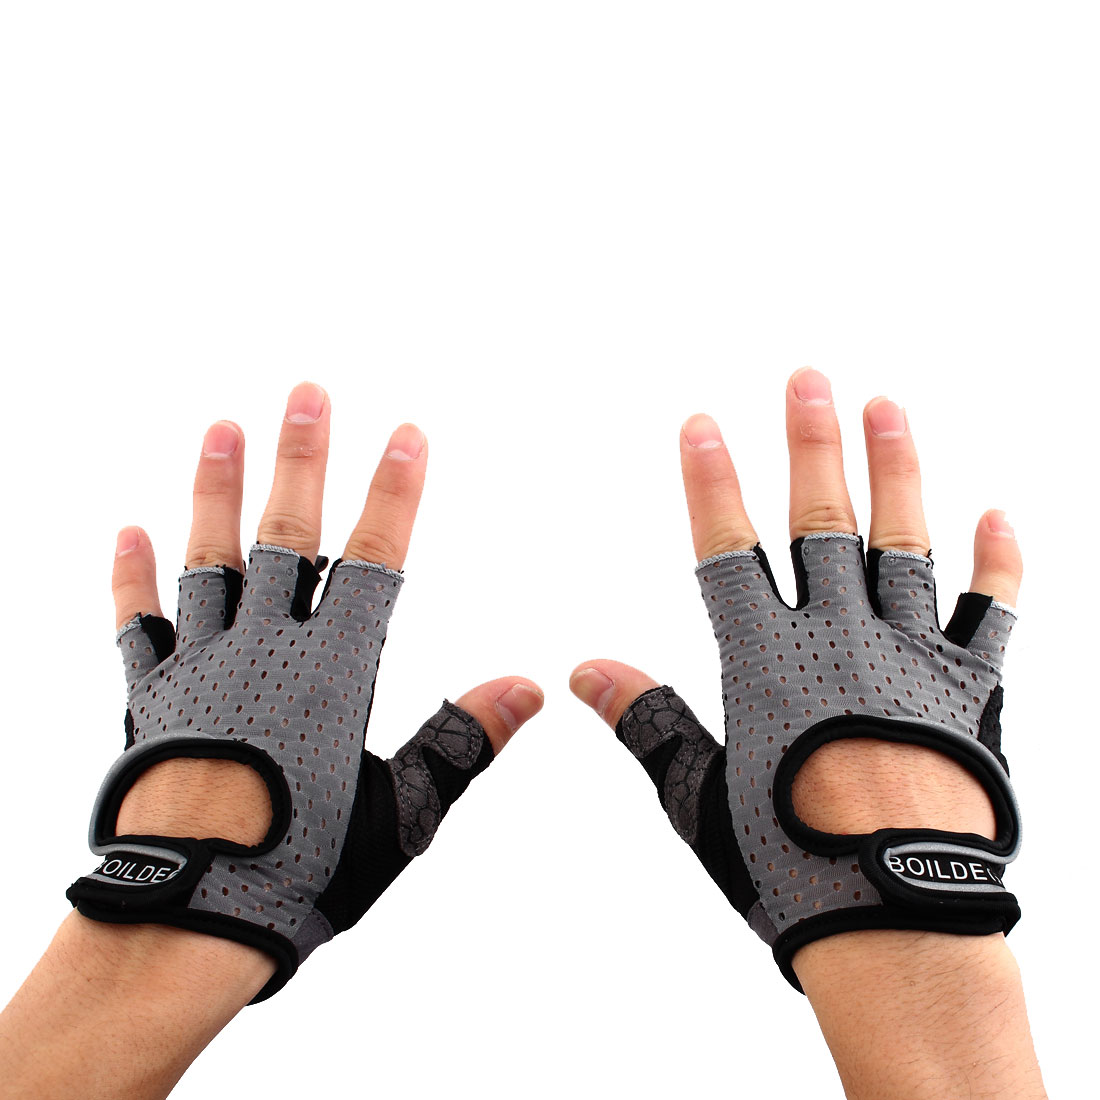 BOILDEG Authorized Unisex Sports Weight Fitness Exercise Workout Breathable Palm Support Gloves Gray Size XL Pair